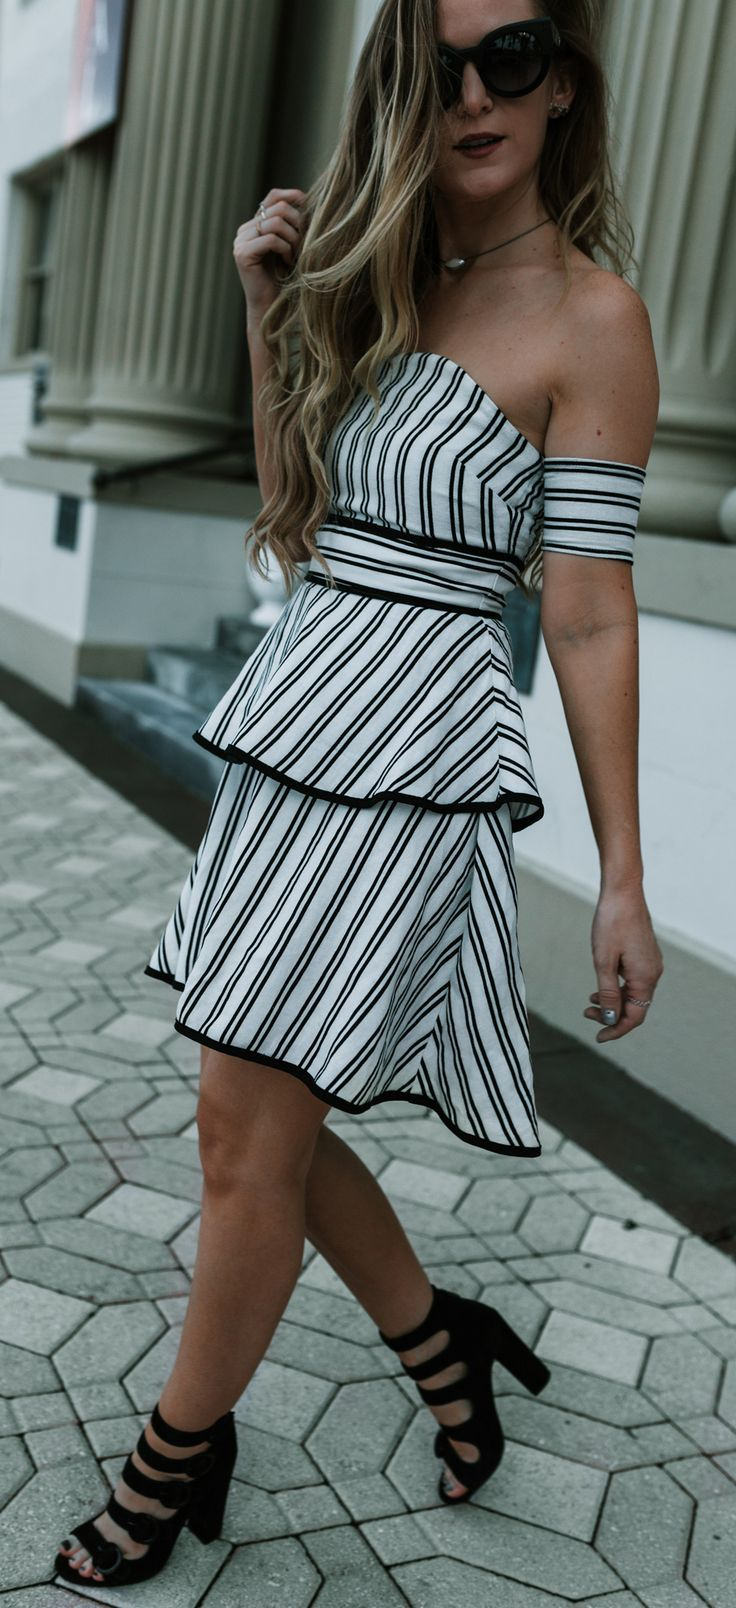 Cute wedding outfit styled with striped off the shoulder dress and buckle block heels